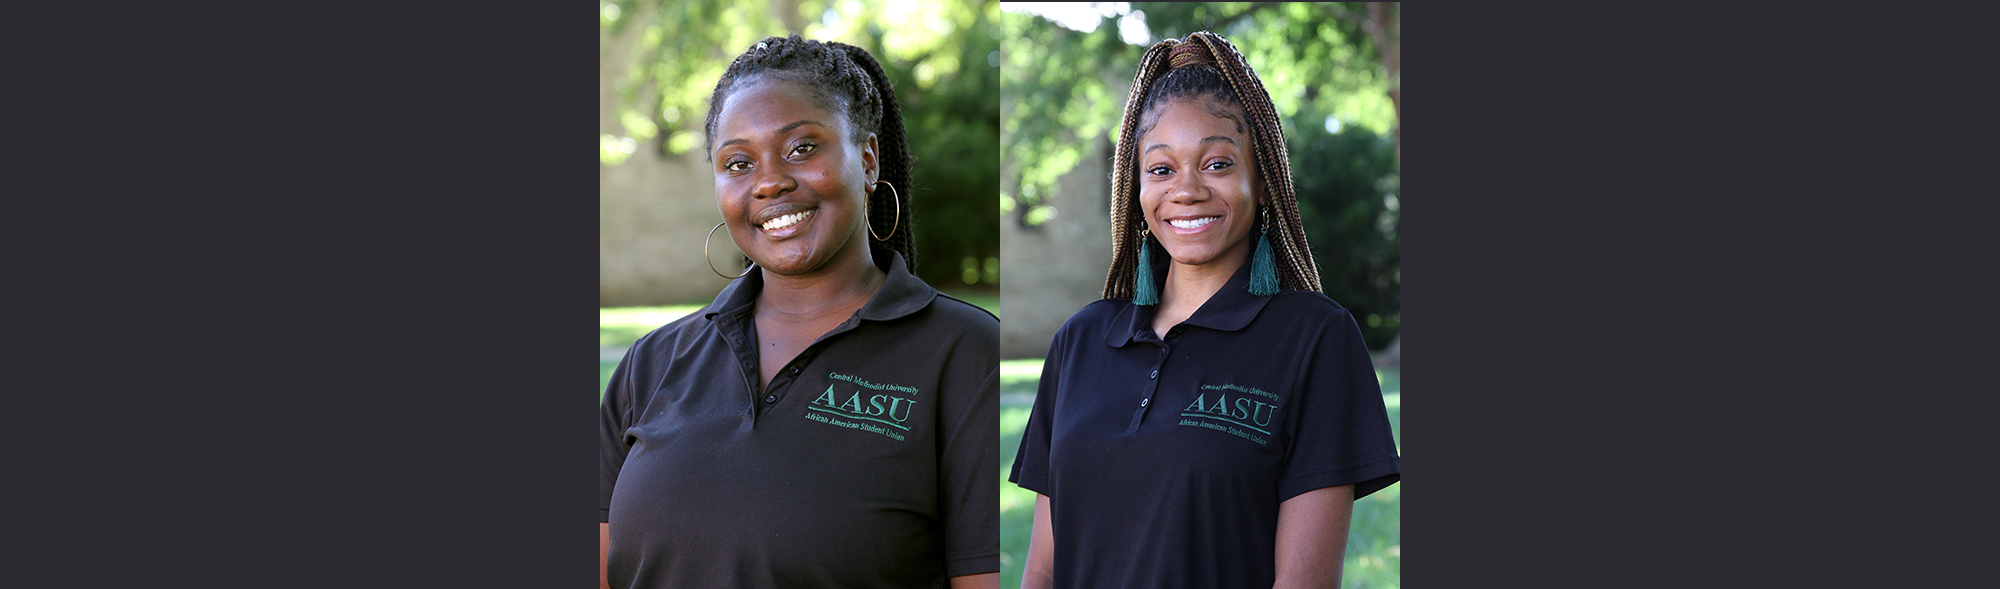 AASU president and vice president for 2020-21